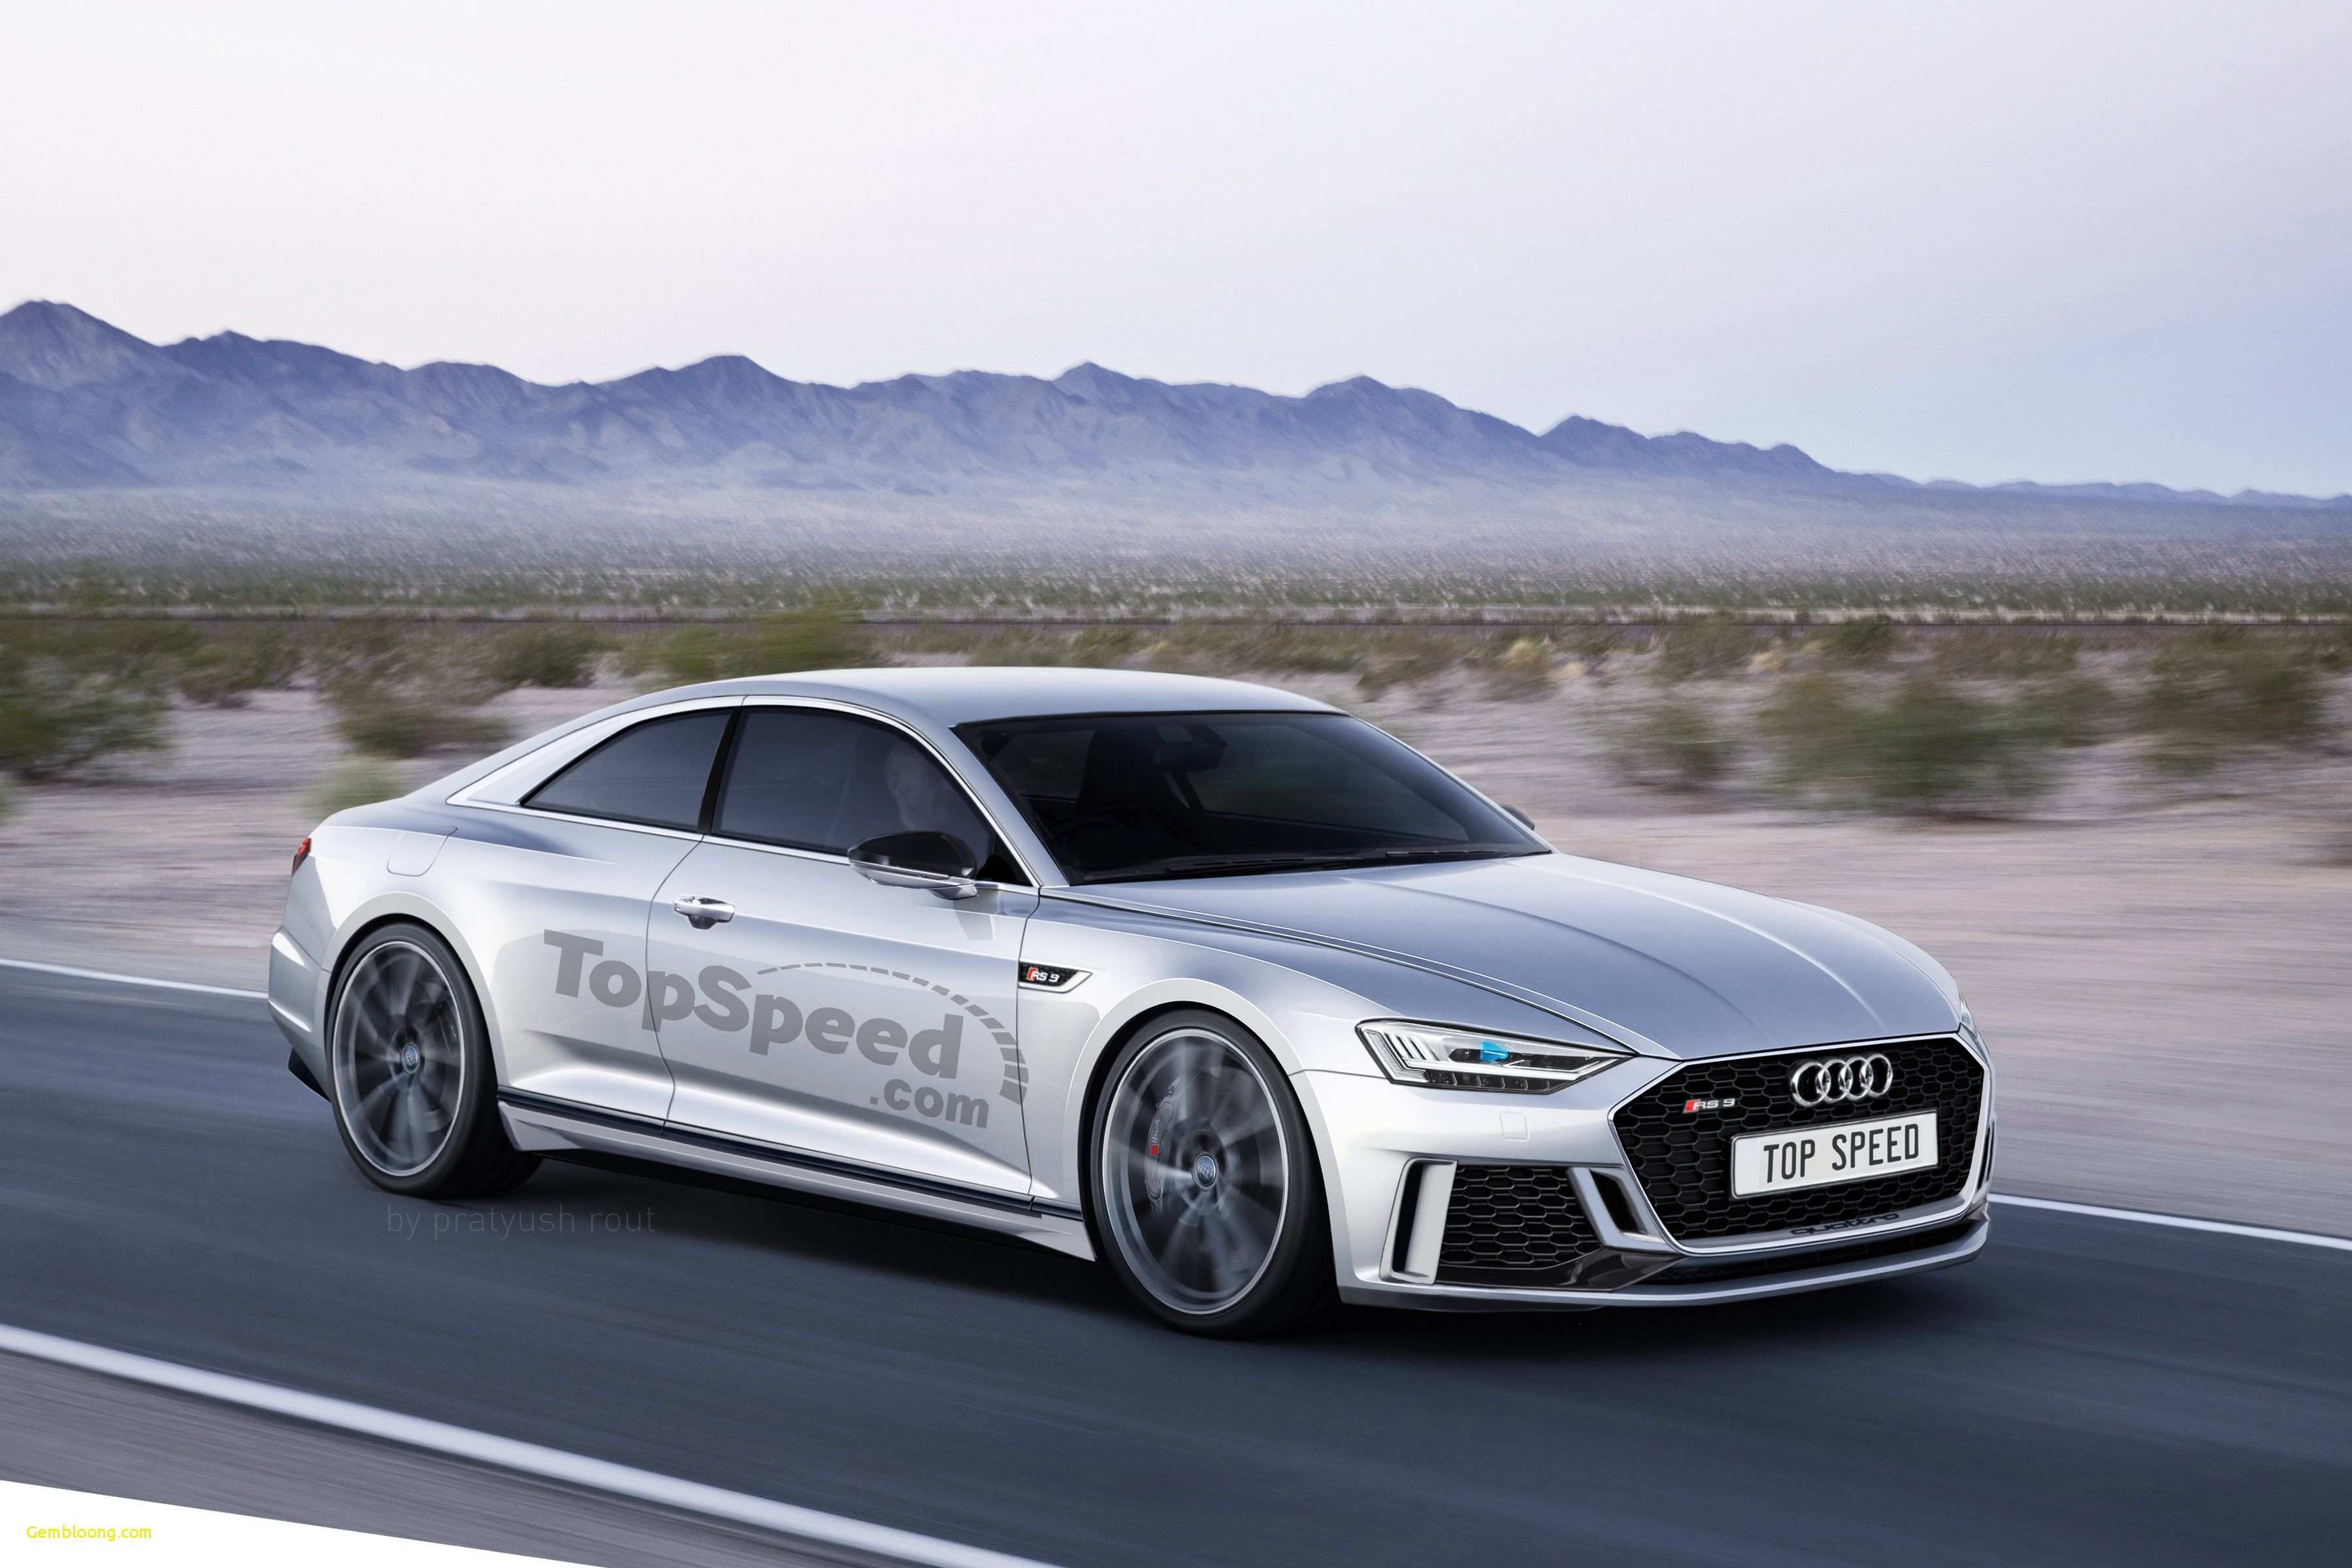 75 All New 2020 Audi Rs5 Tdi Research New